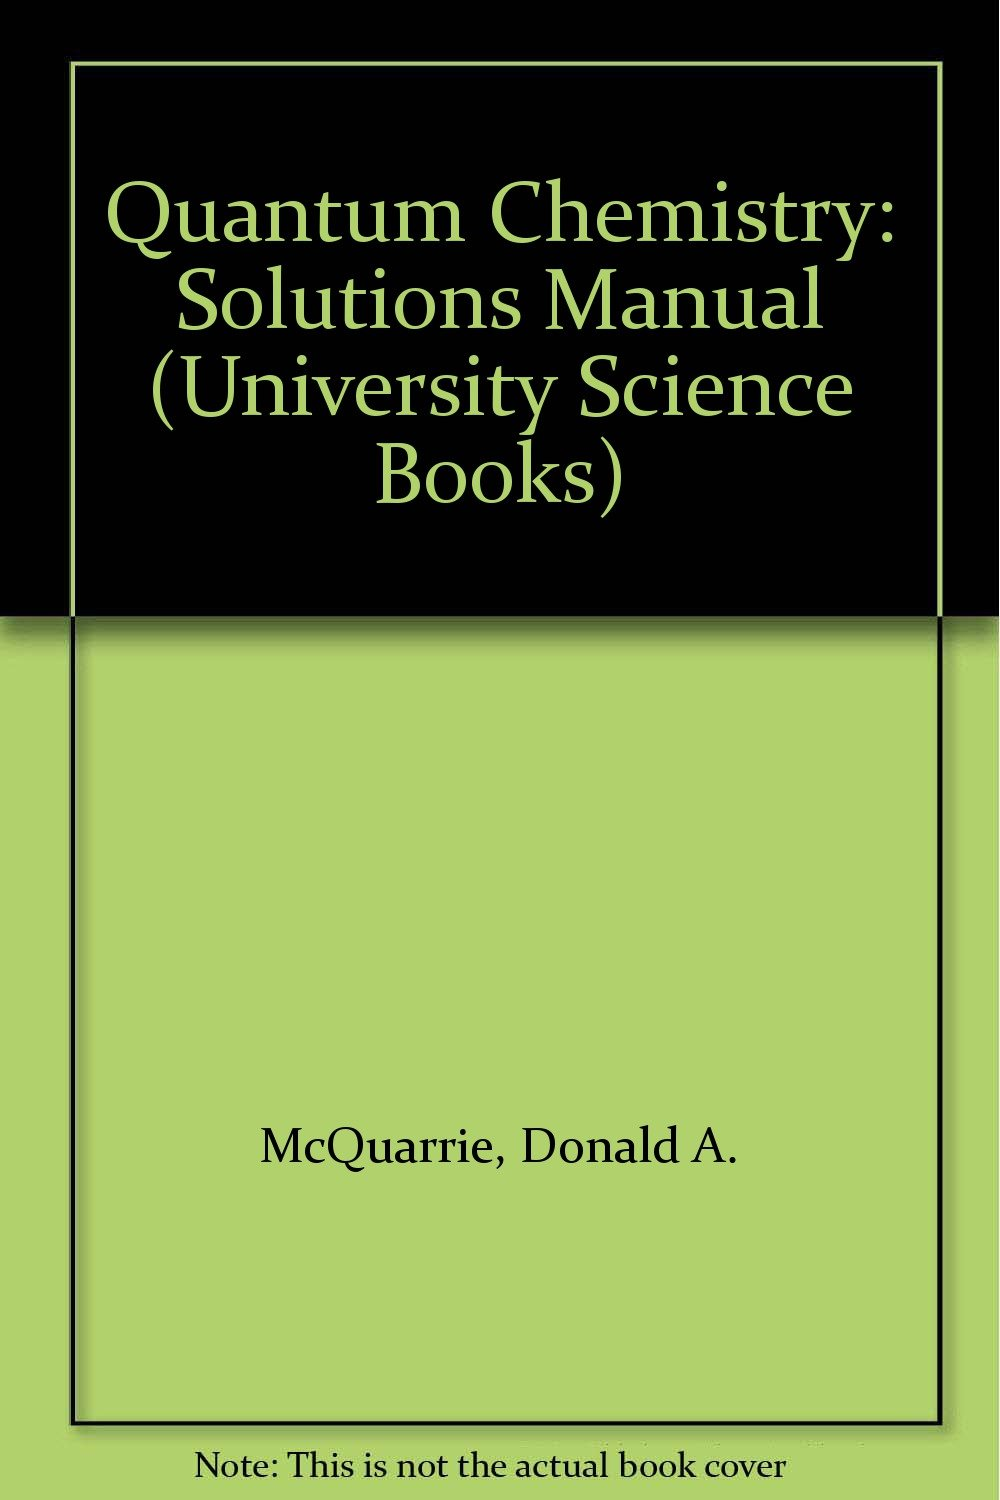 Amazon.in: Buy Quantum Chemistry: Solutions Manual (University Science  Books) Book Online at Low Prices in India | Quantum Chemistry: Solutions  Manual ...